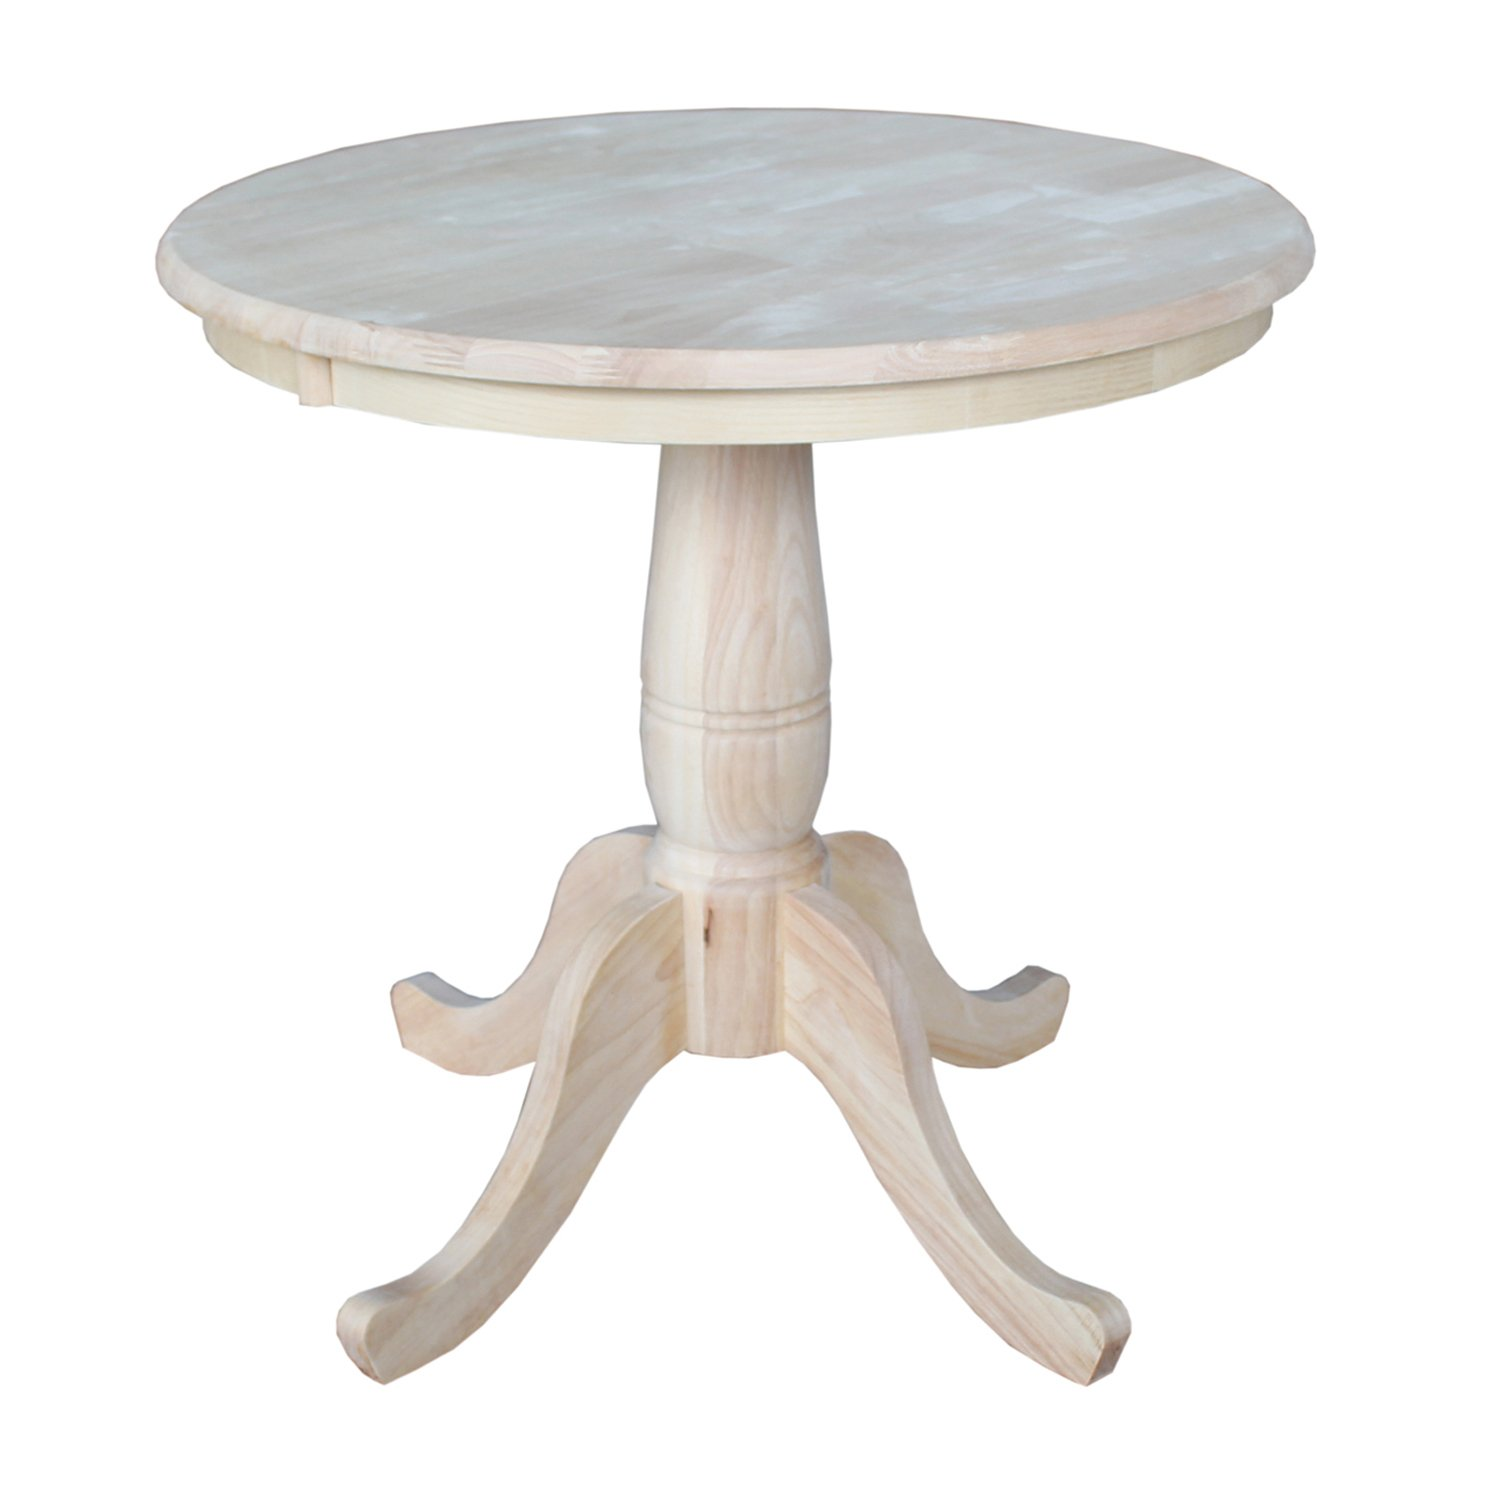 International Concepts Round Top Pedestal Table, 30-Inch by International Concepts